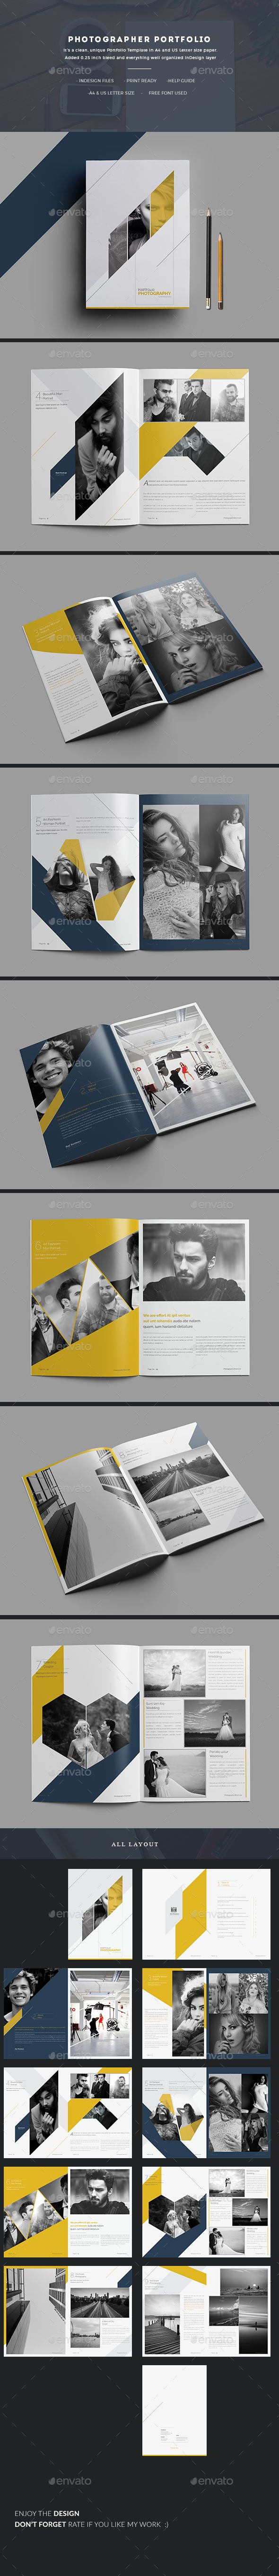 Photographer Portfolio  — InDesign Template #inspiration #photo album #landscape • Download ➝ https://graphicriver.net/item/photographer-portfolio/18564244?ref=pxcr